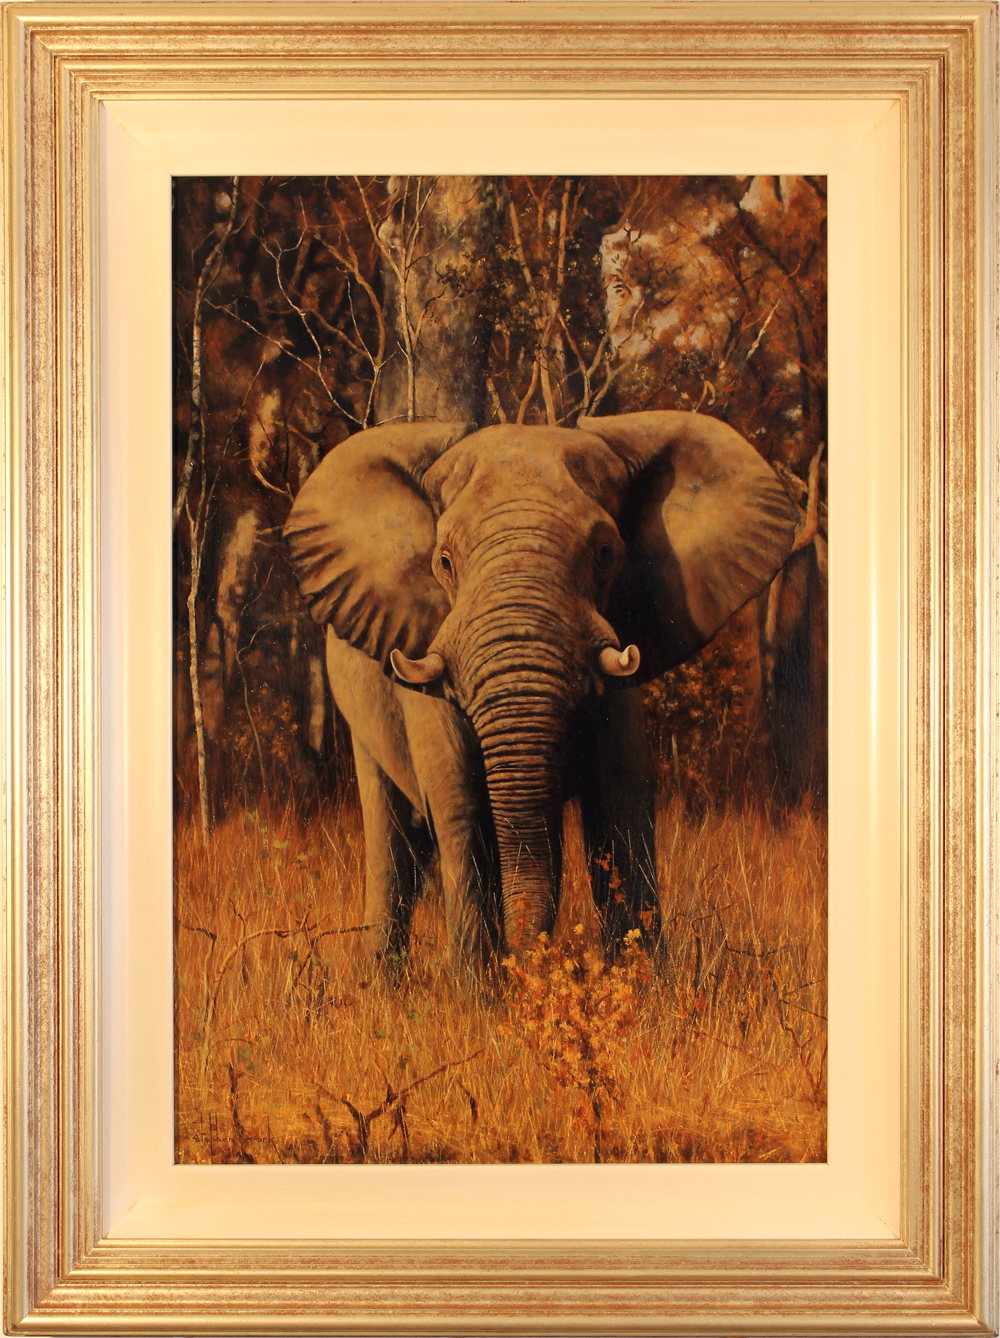 Stephen Park, Original oil painting on panel, Elephant Click to enlarge